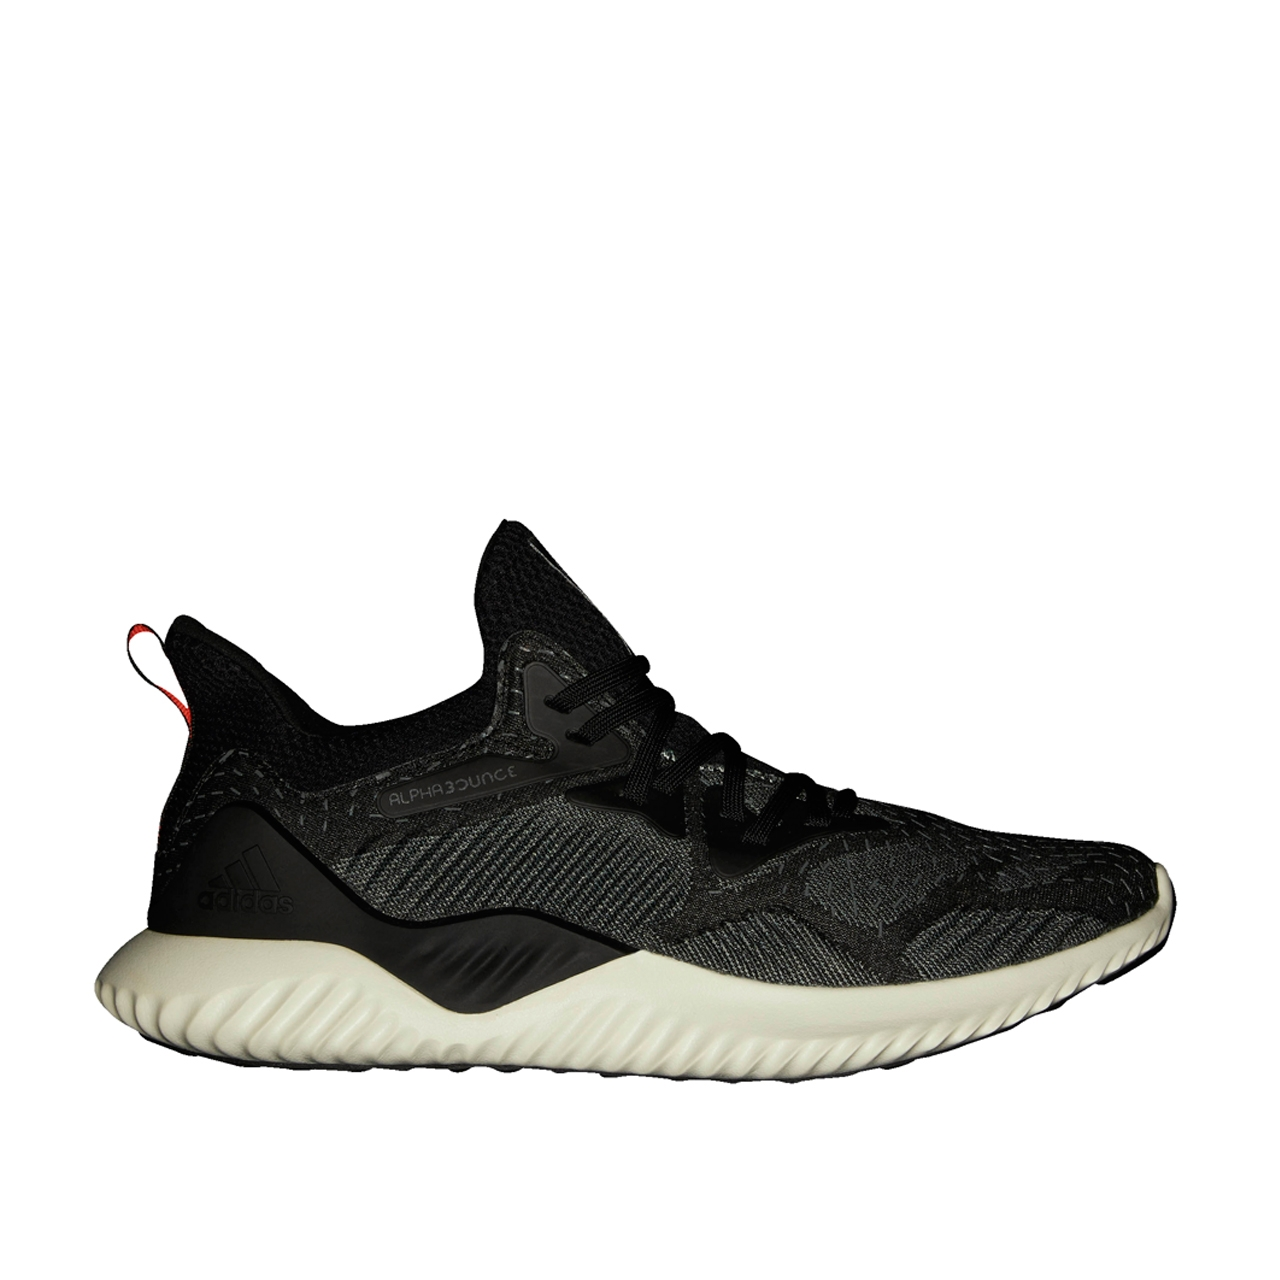 huge discount 3a160 9ad1d Adidas Alphabounce Beyond  Adidas Alphabounce Beyond sale